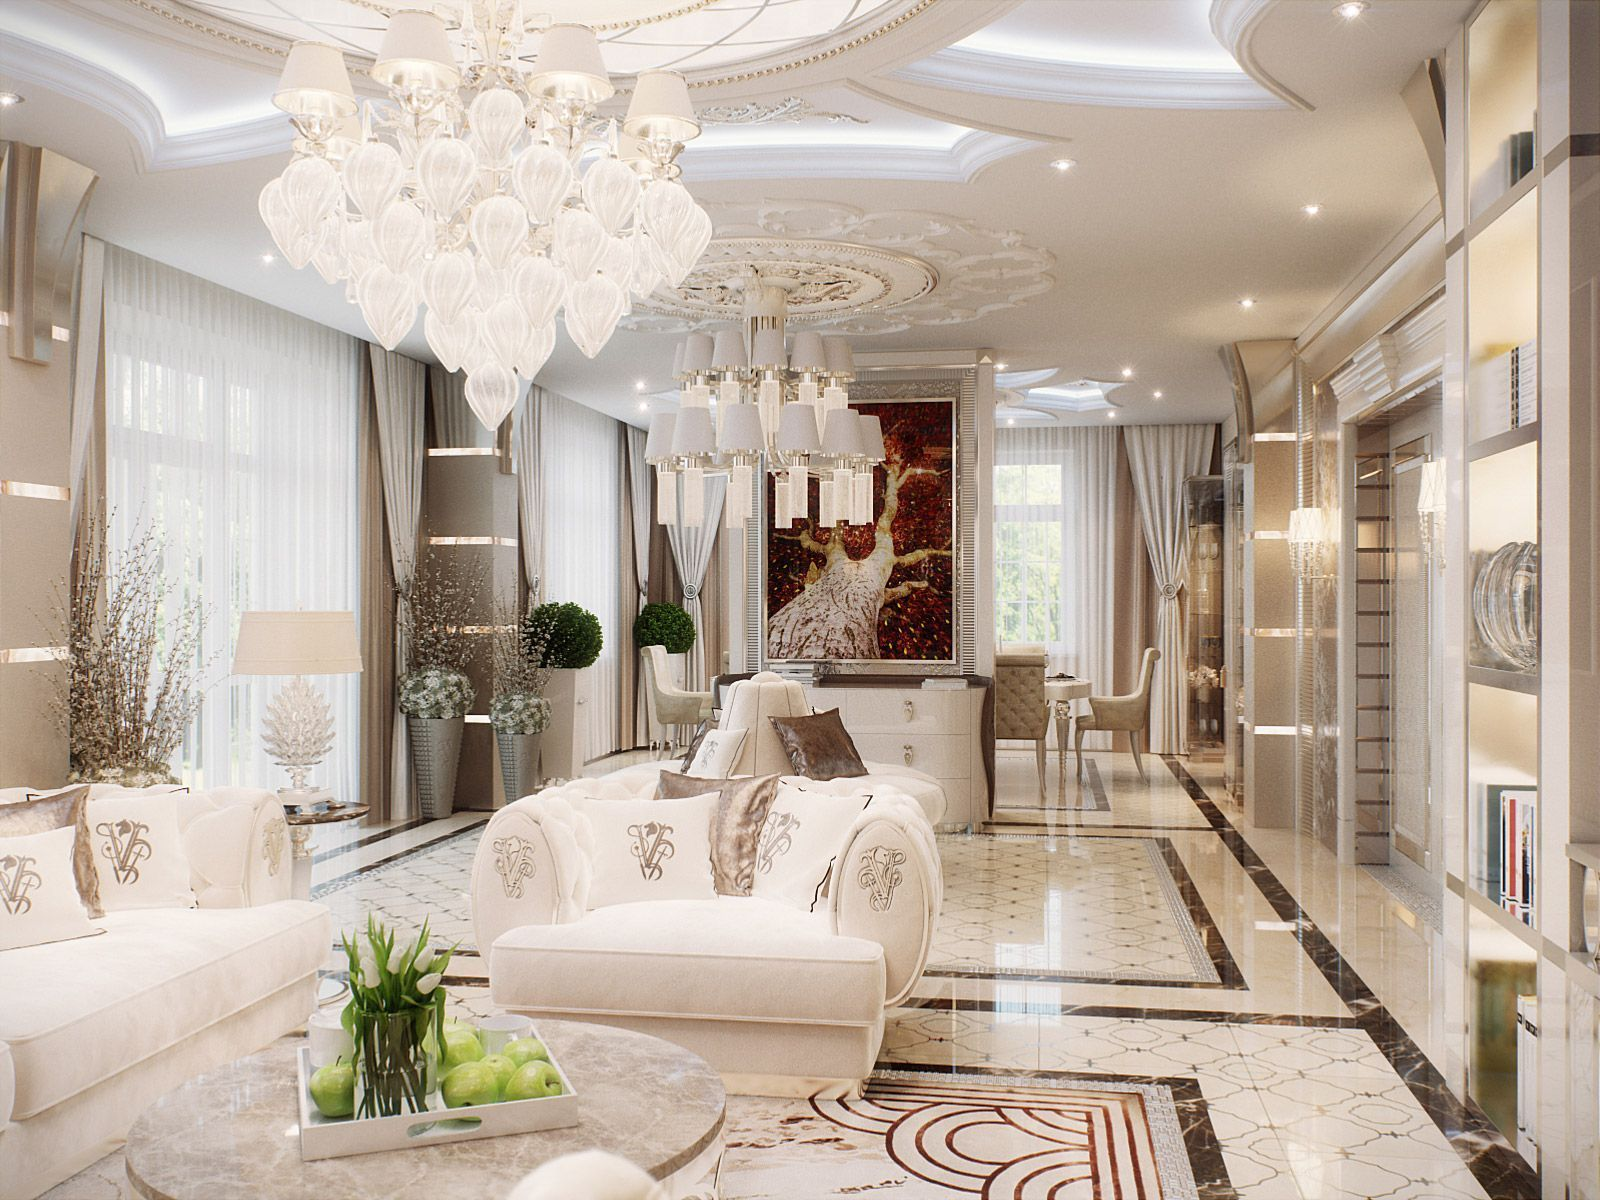 Great looking Art deco living with marble floors and complex white ceiling